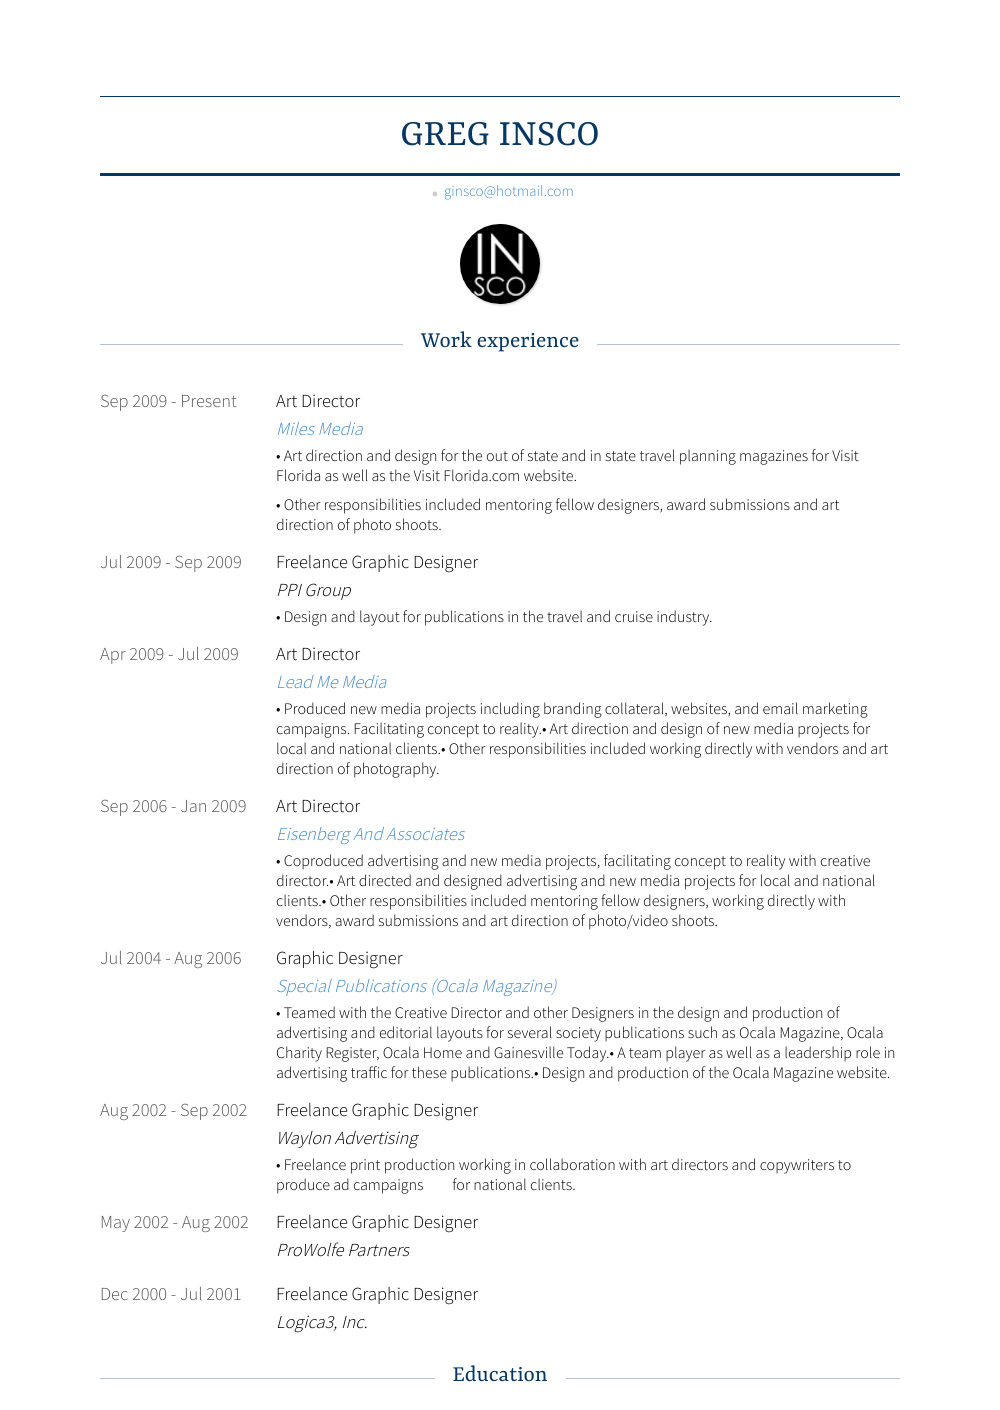 art director resume director resume samples amp templates visualcv 14249 | ginsco